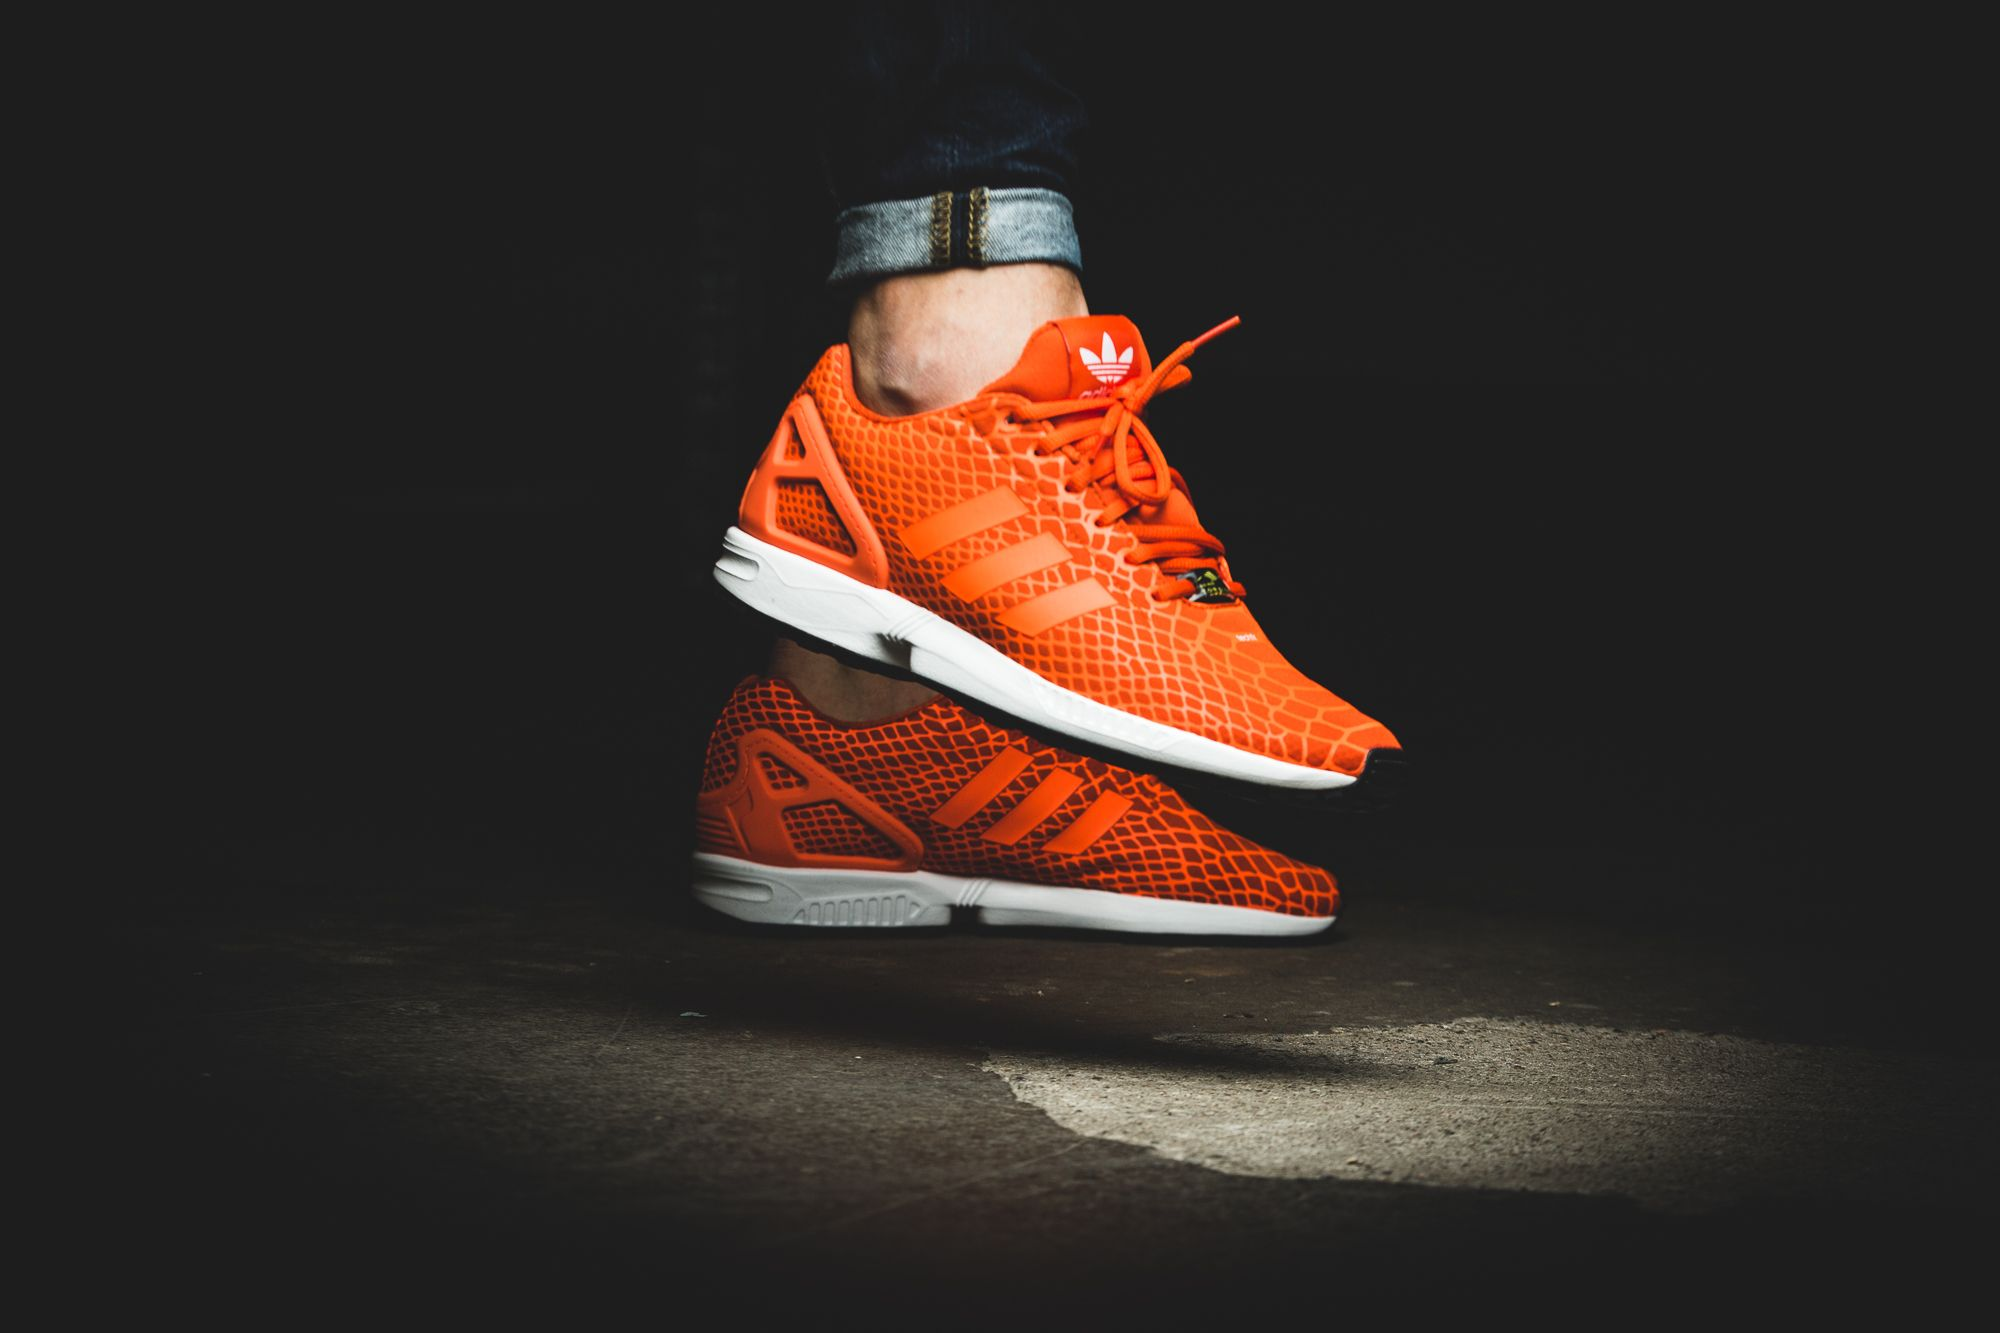 The adidas Originals ZX Flux Techfit is available at our